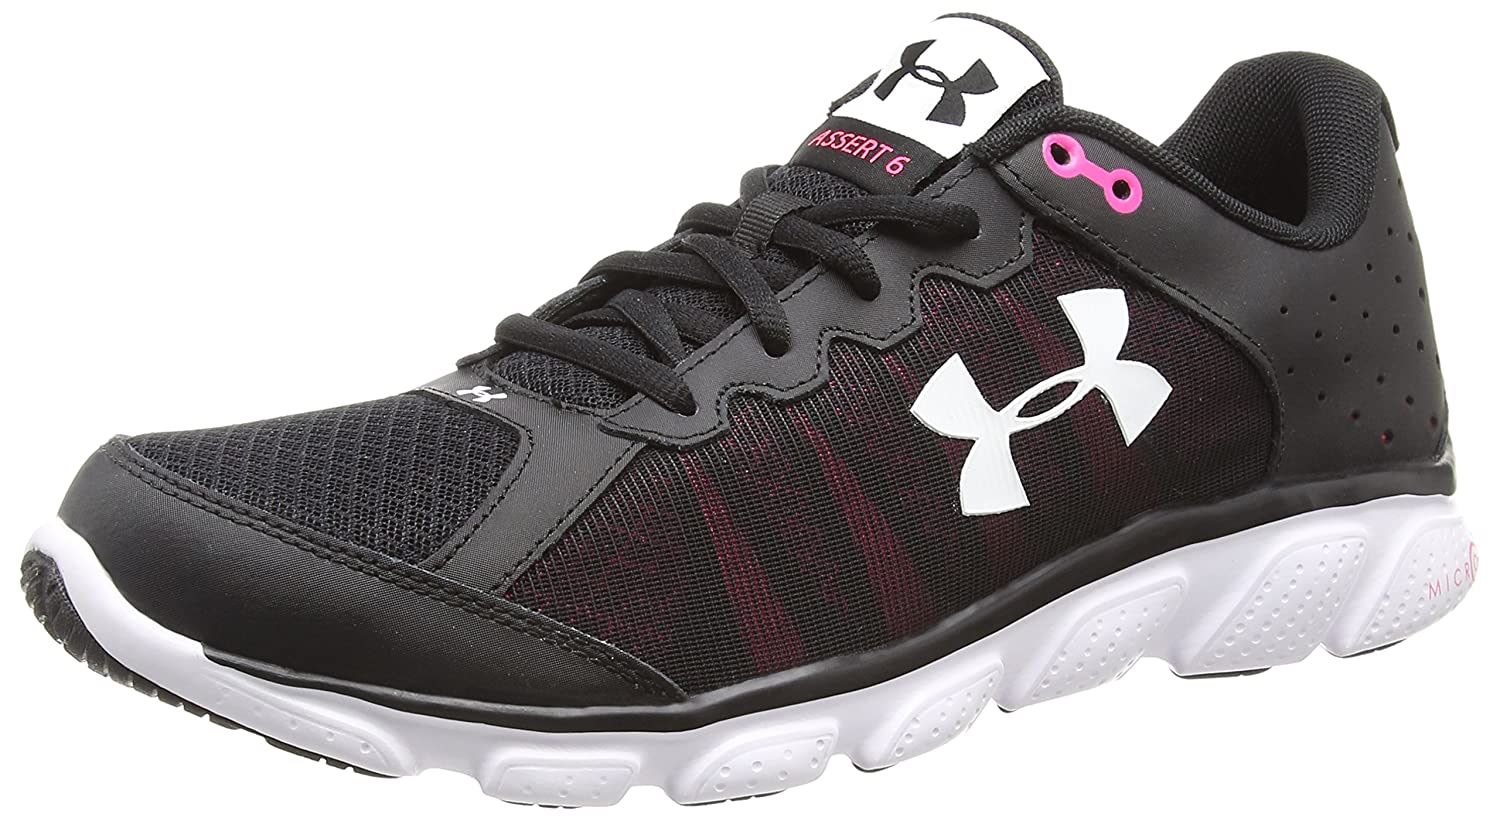 Under Armour Women's Micro Shoe G Assert 6 Running Shoe Micro B00ZVOQ5NG 8 M US|Black (001)/Harmony Red 558f75